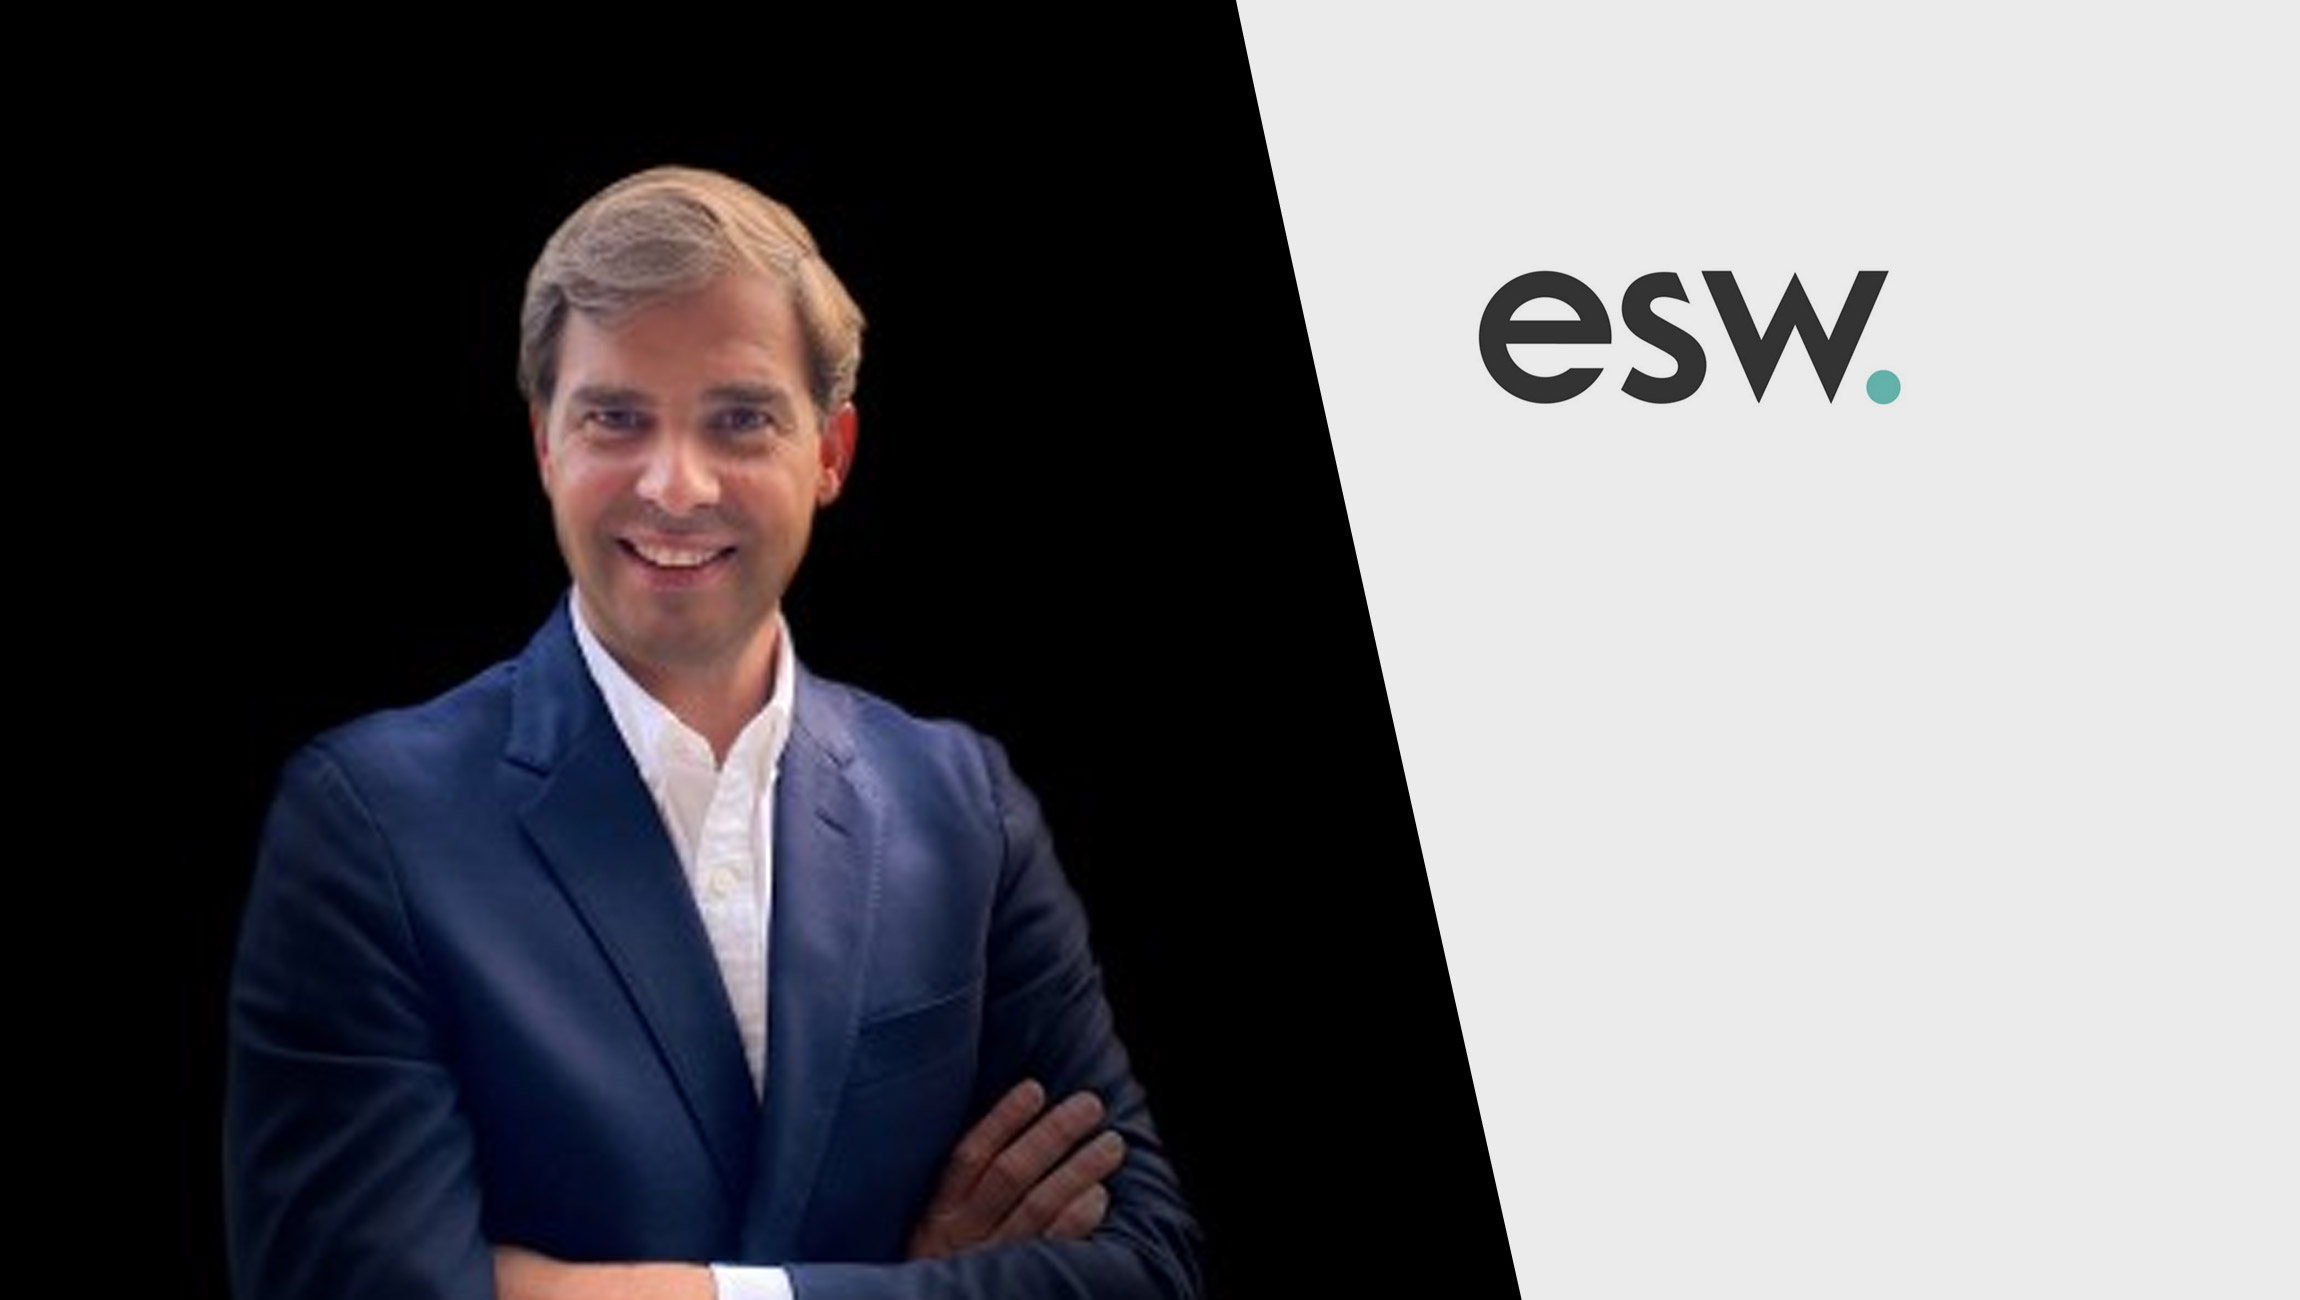 eShopWorld Appoints Martim Avillez Oliveira As Chief Commercial Officer - EMEA And APAC